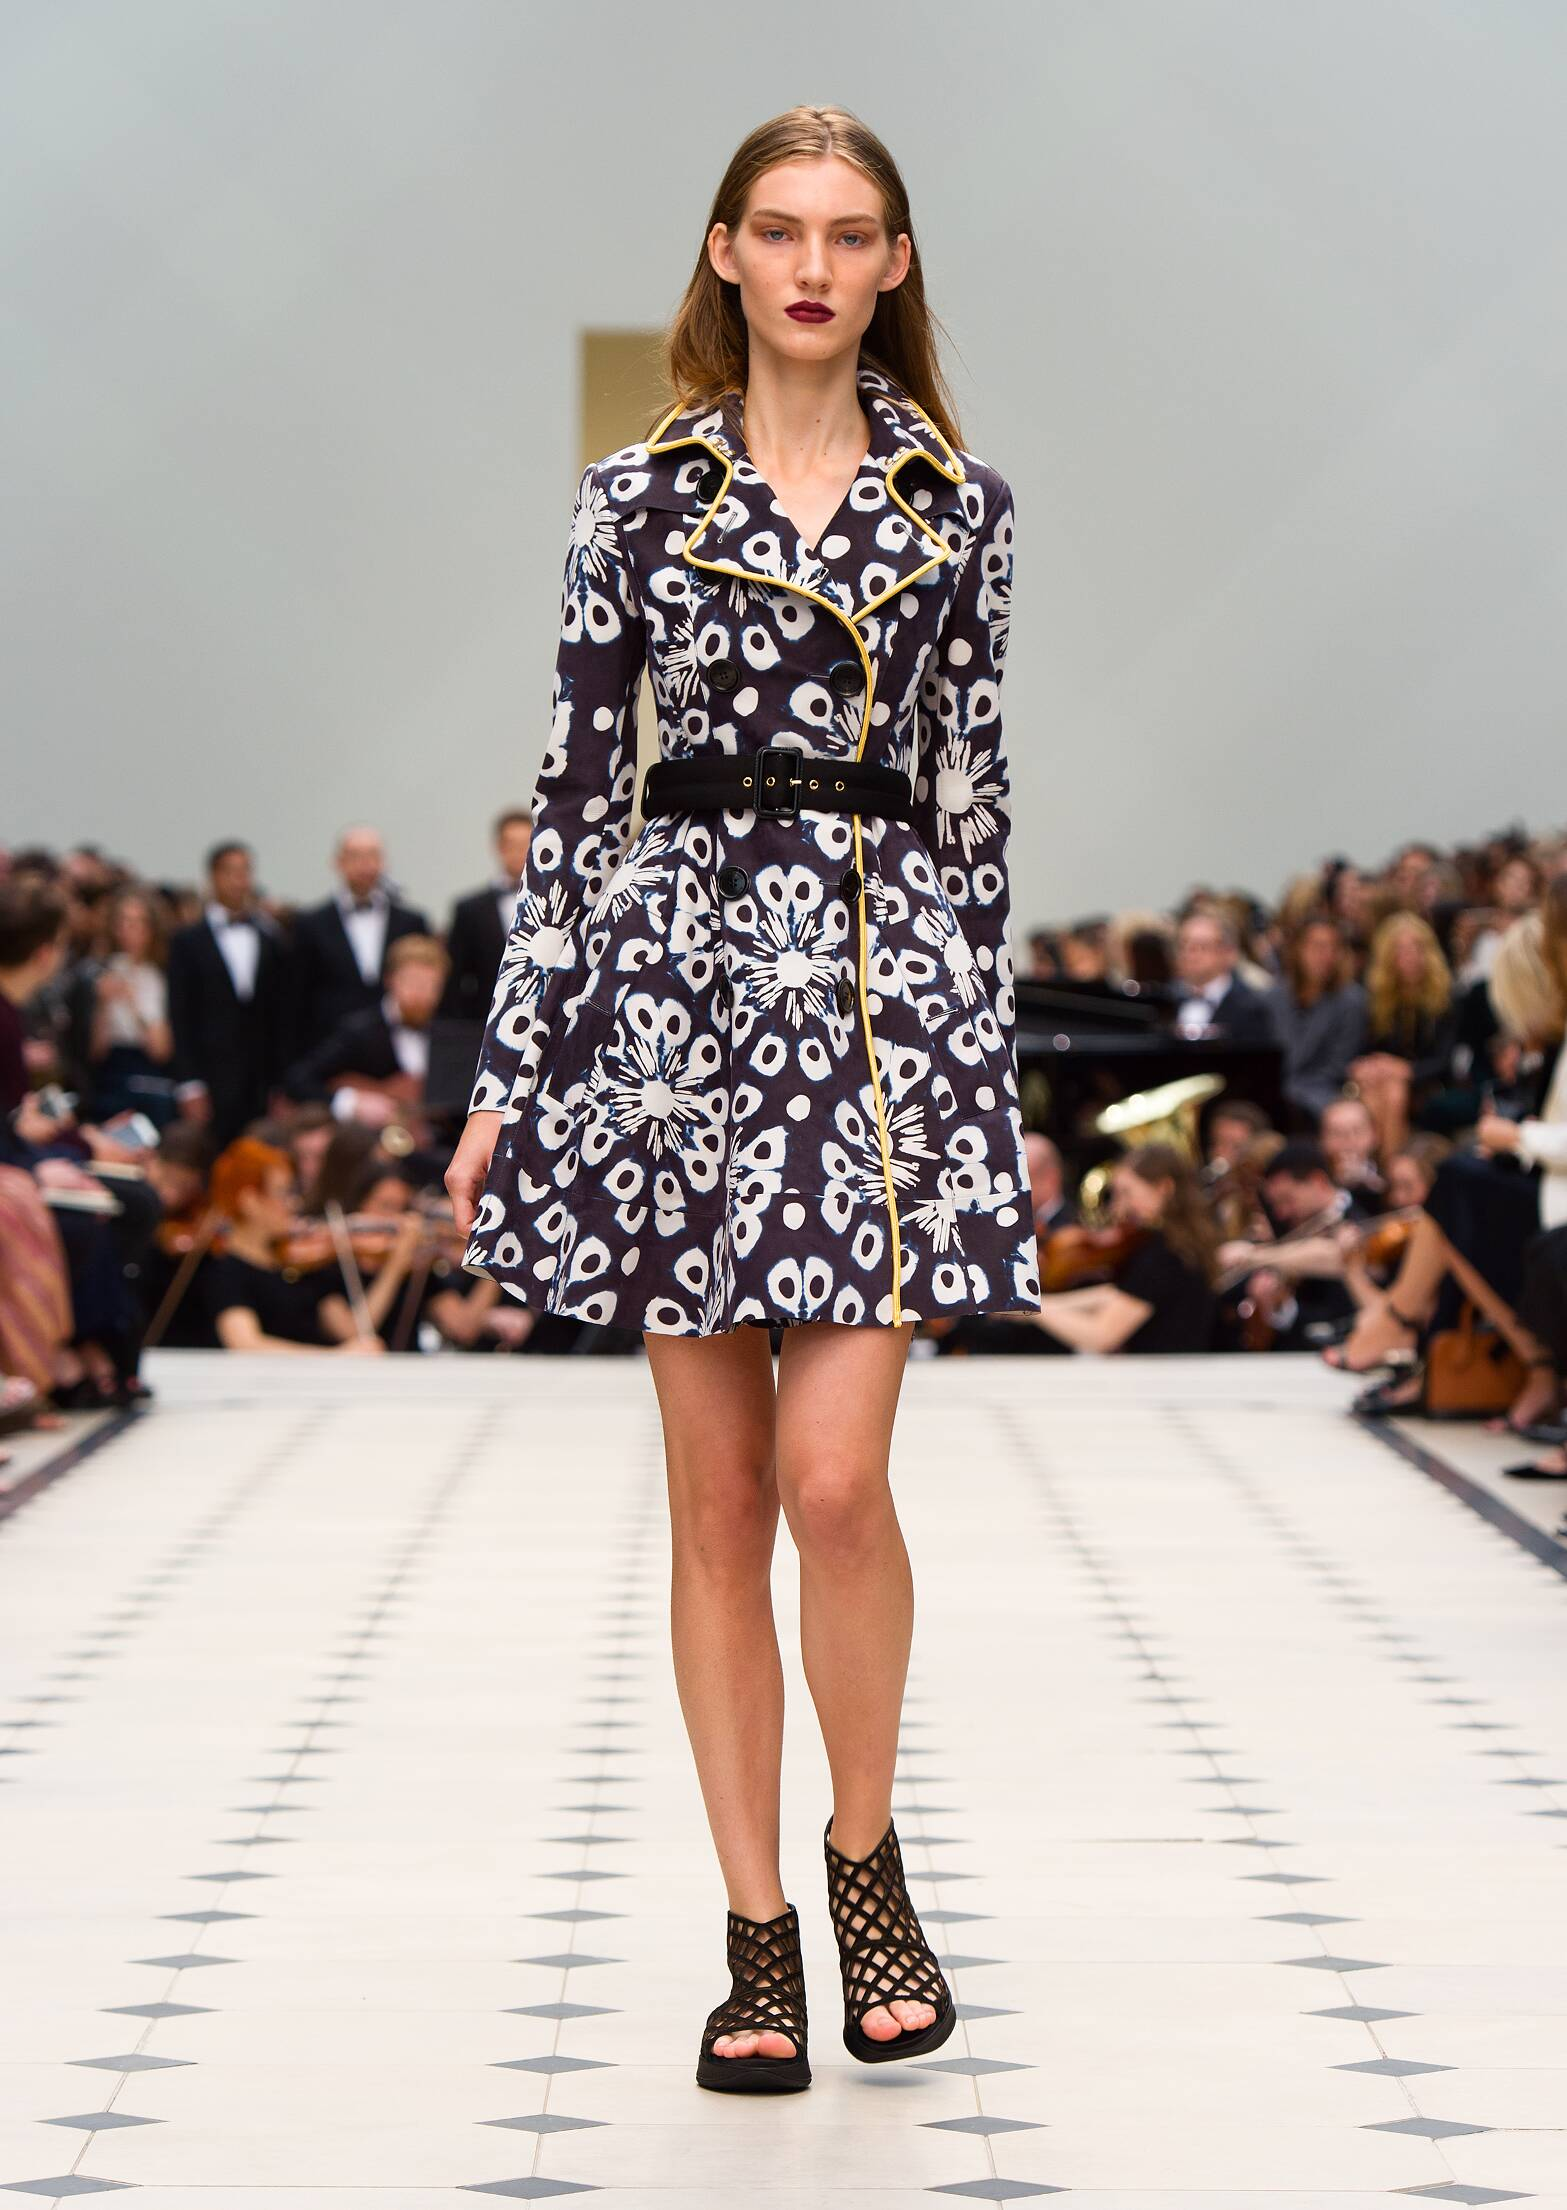 Burberry Prorsum Summer 2016 Catwalk